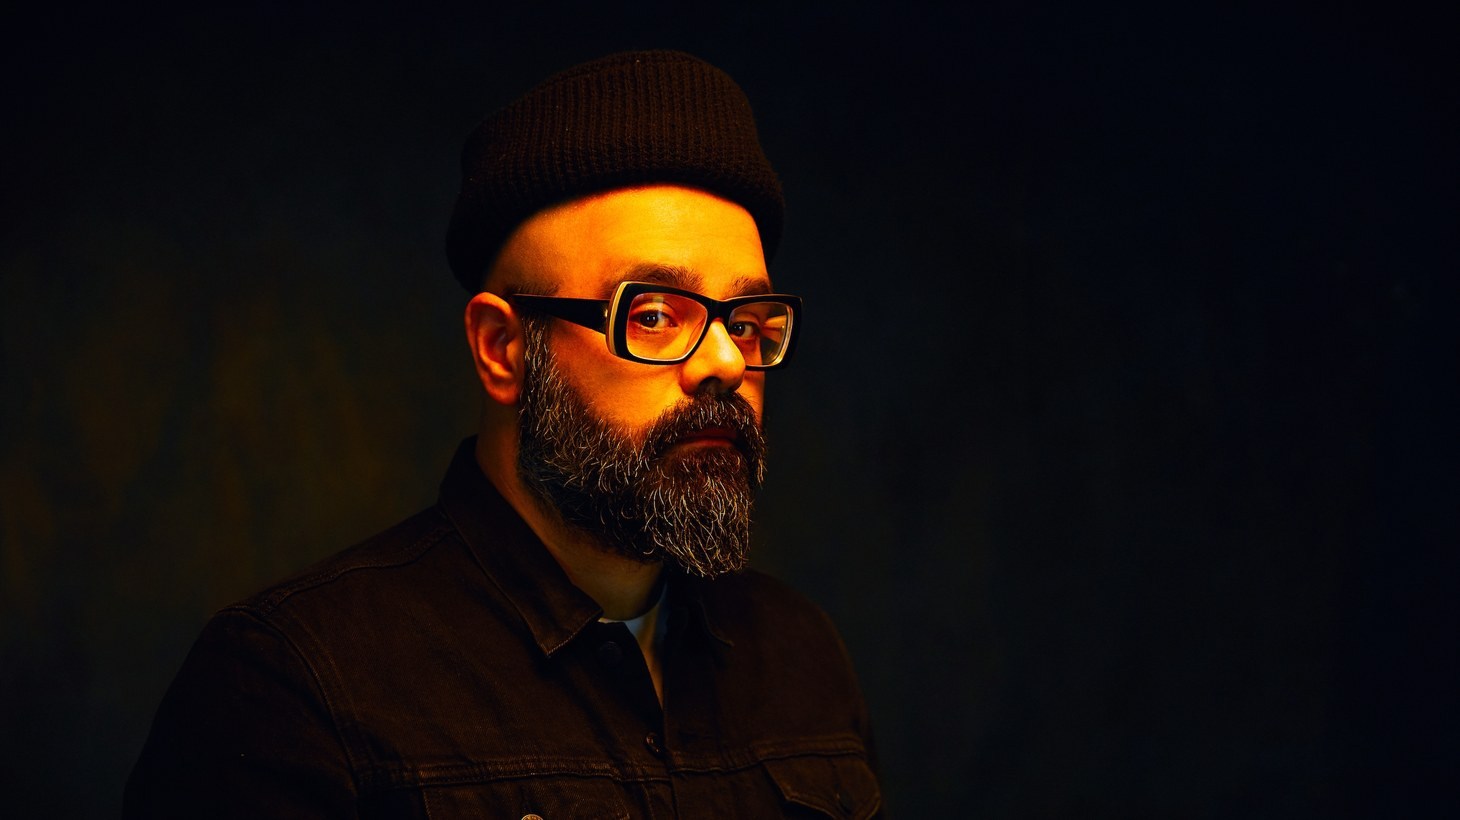 Chico Mann's whole life has revolved around music and has toured the world for nearly two decades. A member of Antibalas and half of the duo Captain Planet, Mann concocts a polyrhythmic orchestra influenced by Afrobeat with psychedelic leanings.